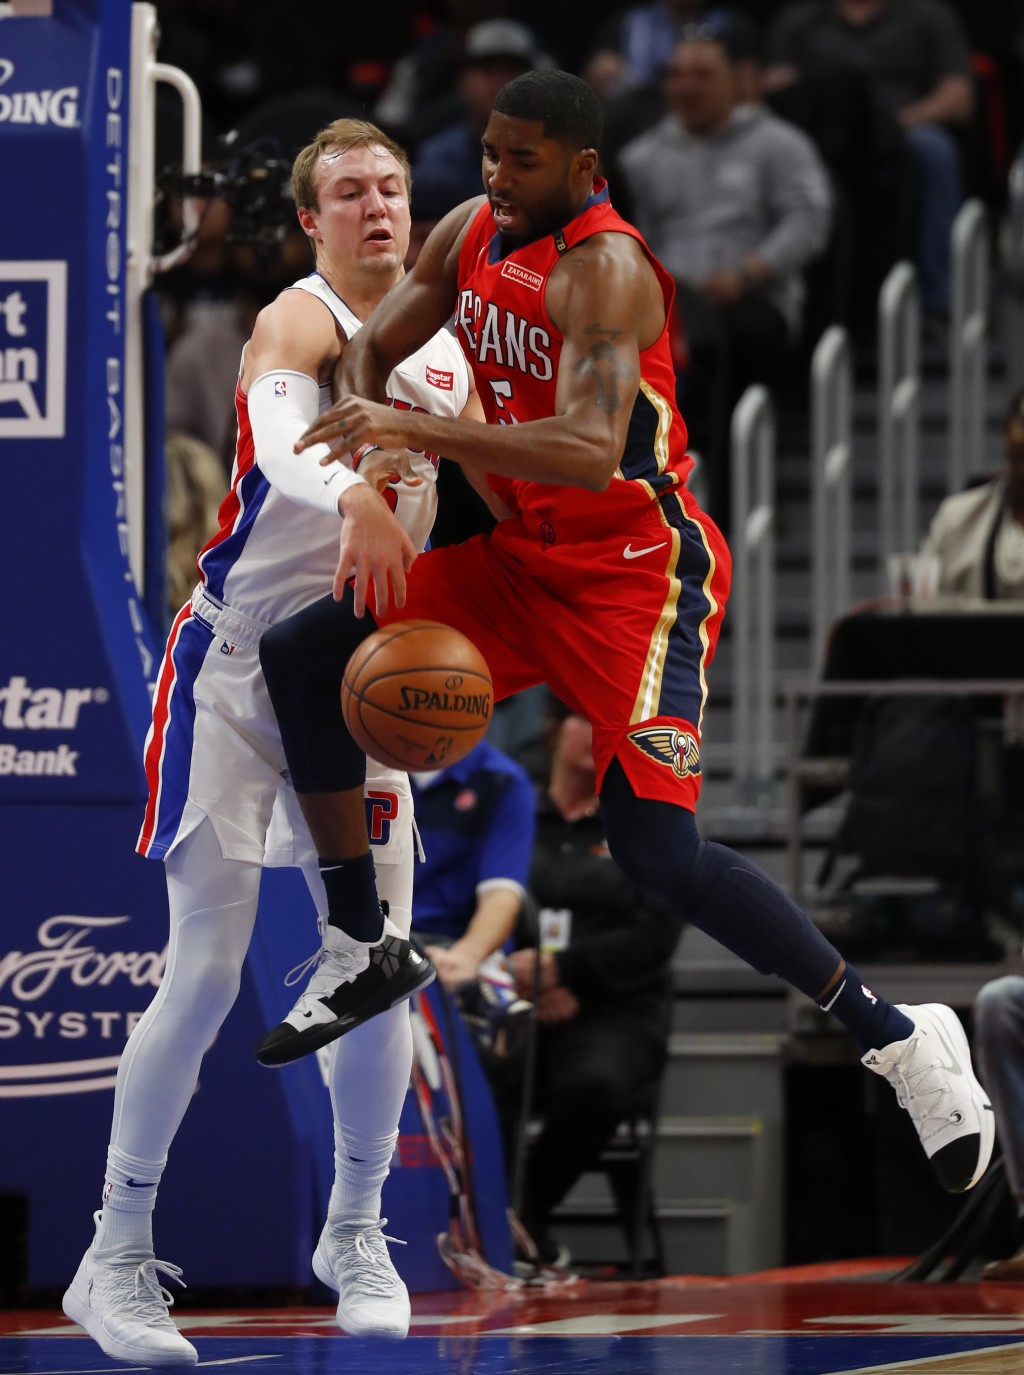 Detroit Pistons guard Luke Kennard, left, knocks the ball from New Orleans Pelicans guard E'Twaun Moore, right, in the first half of an NBA basketball...